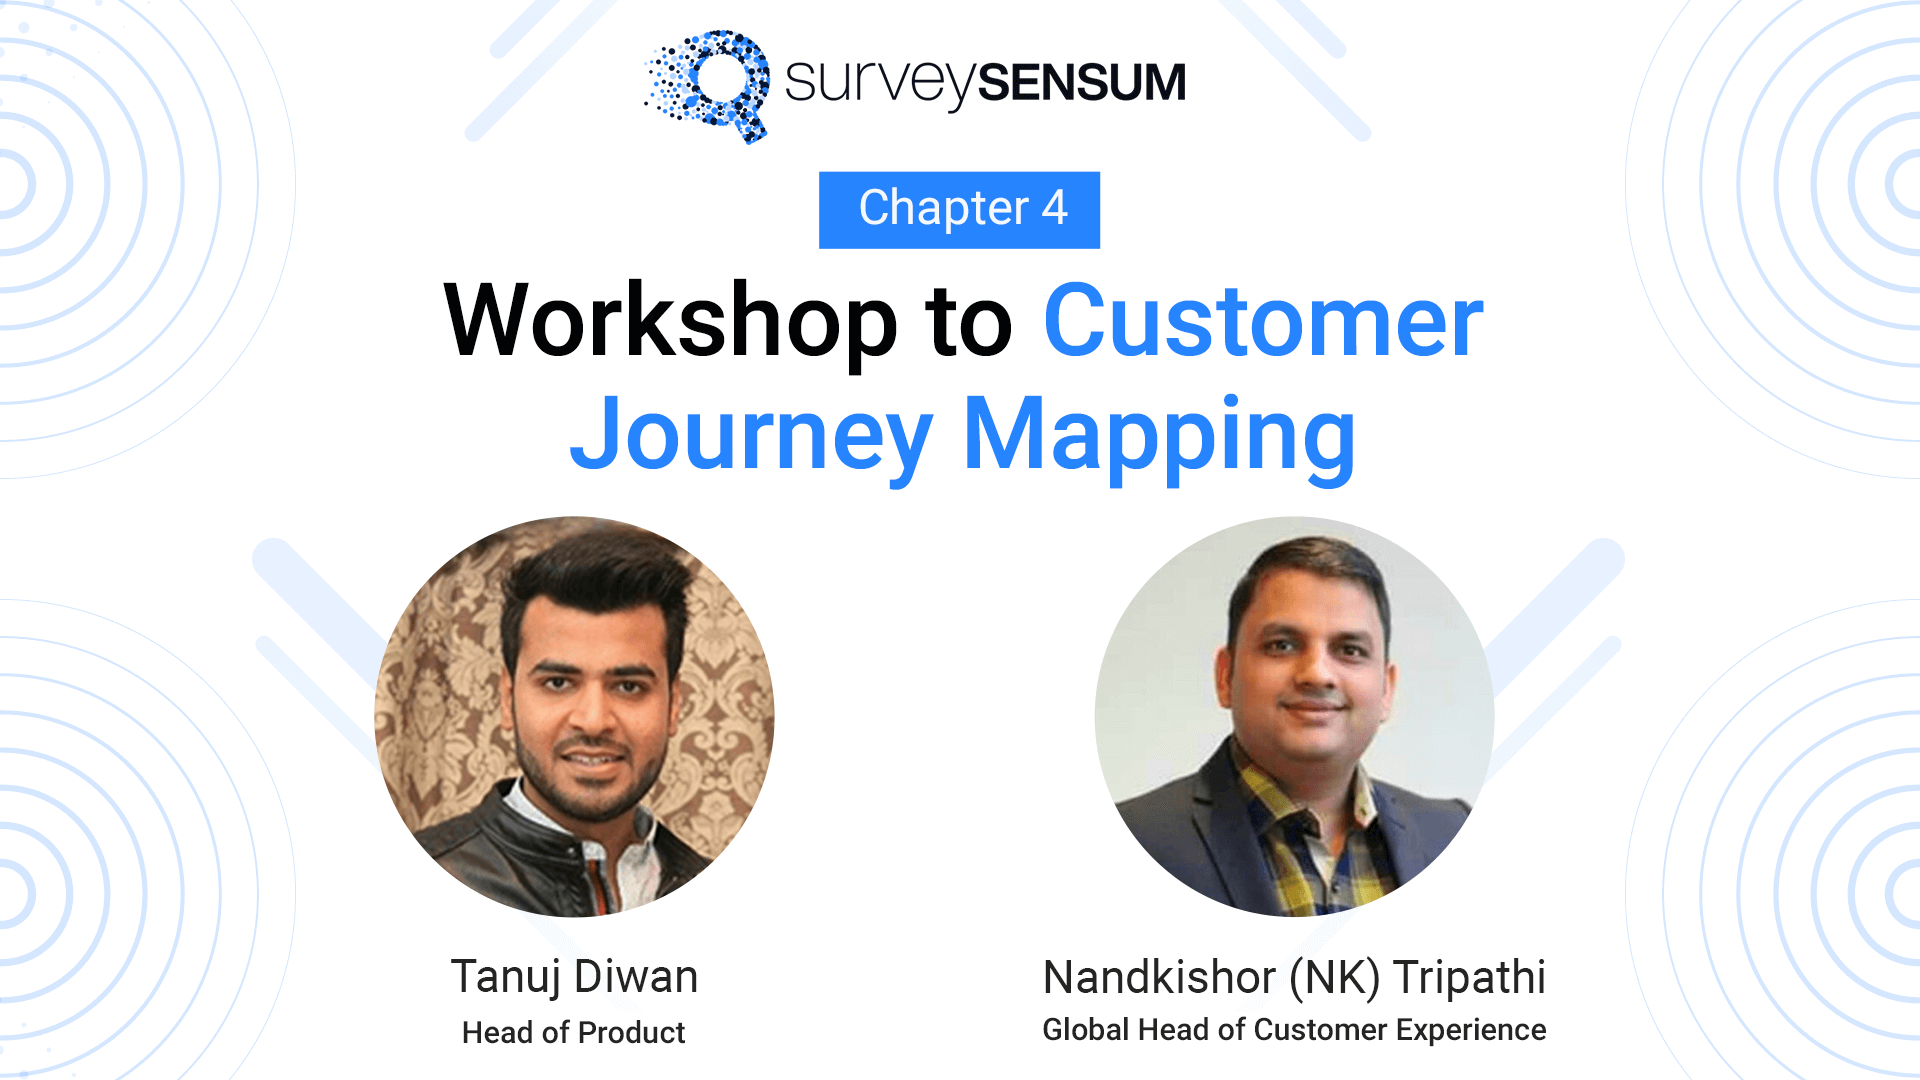 Chapter 4: How to run a Customer Journey Mapping Workshop